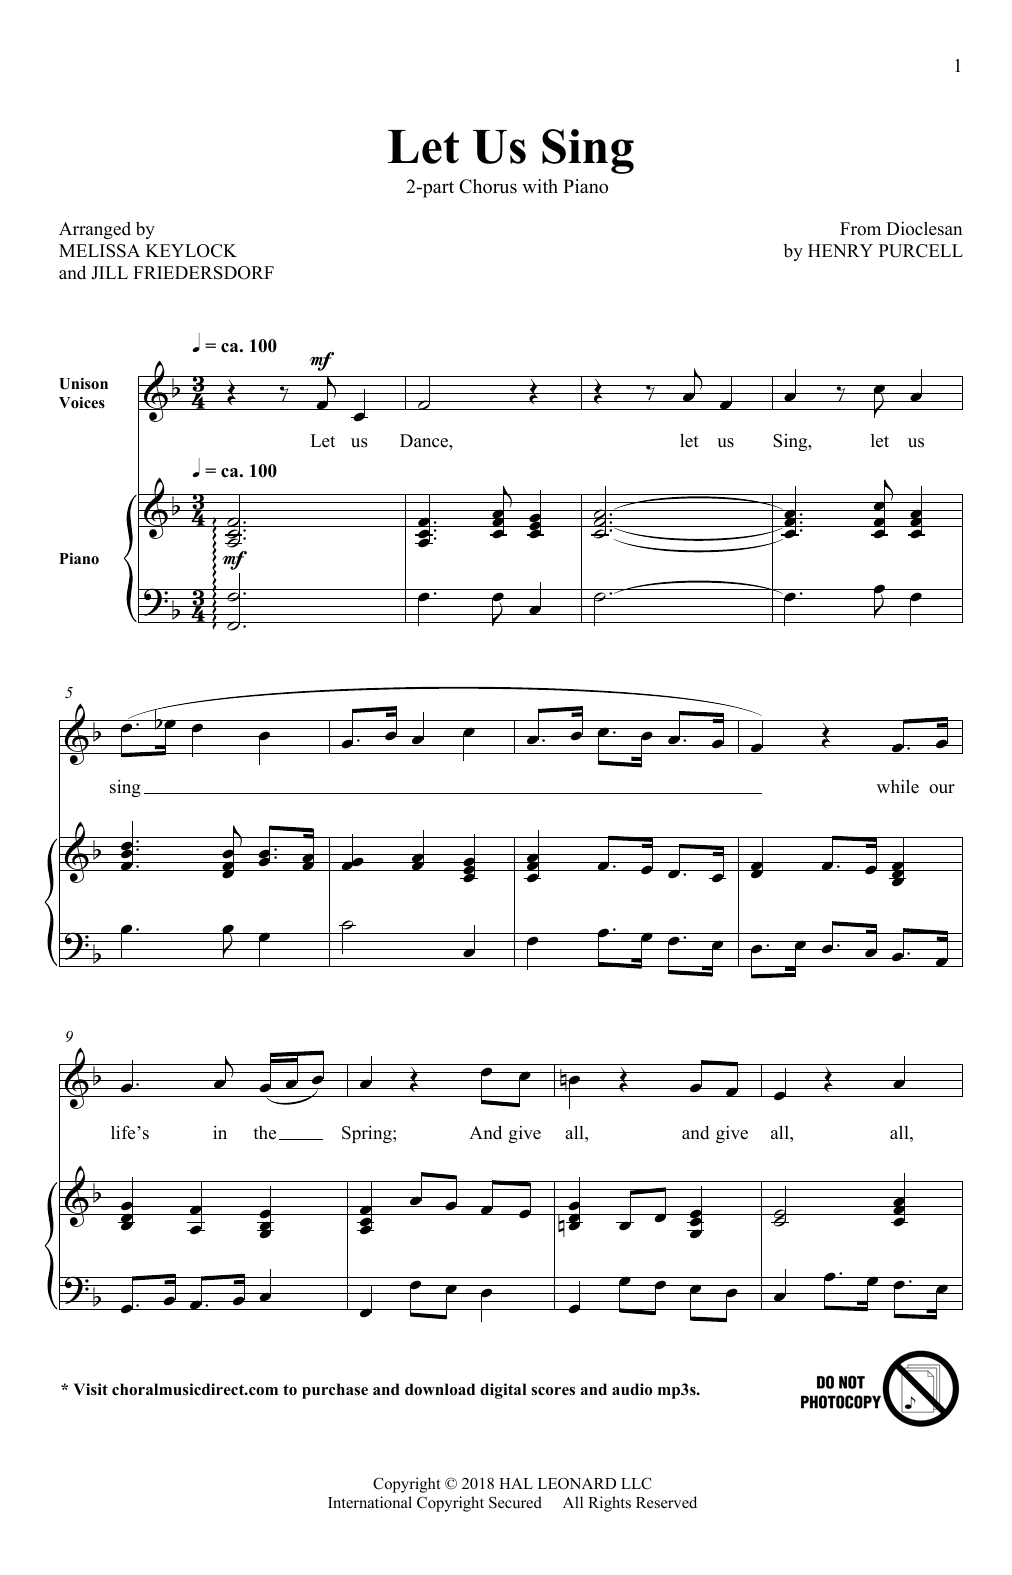 Let Us Sing Sheet Music